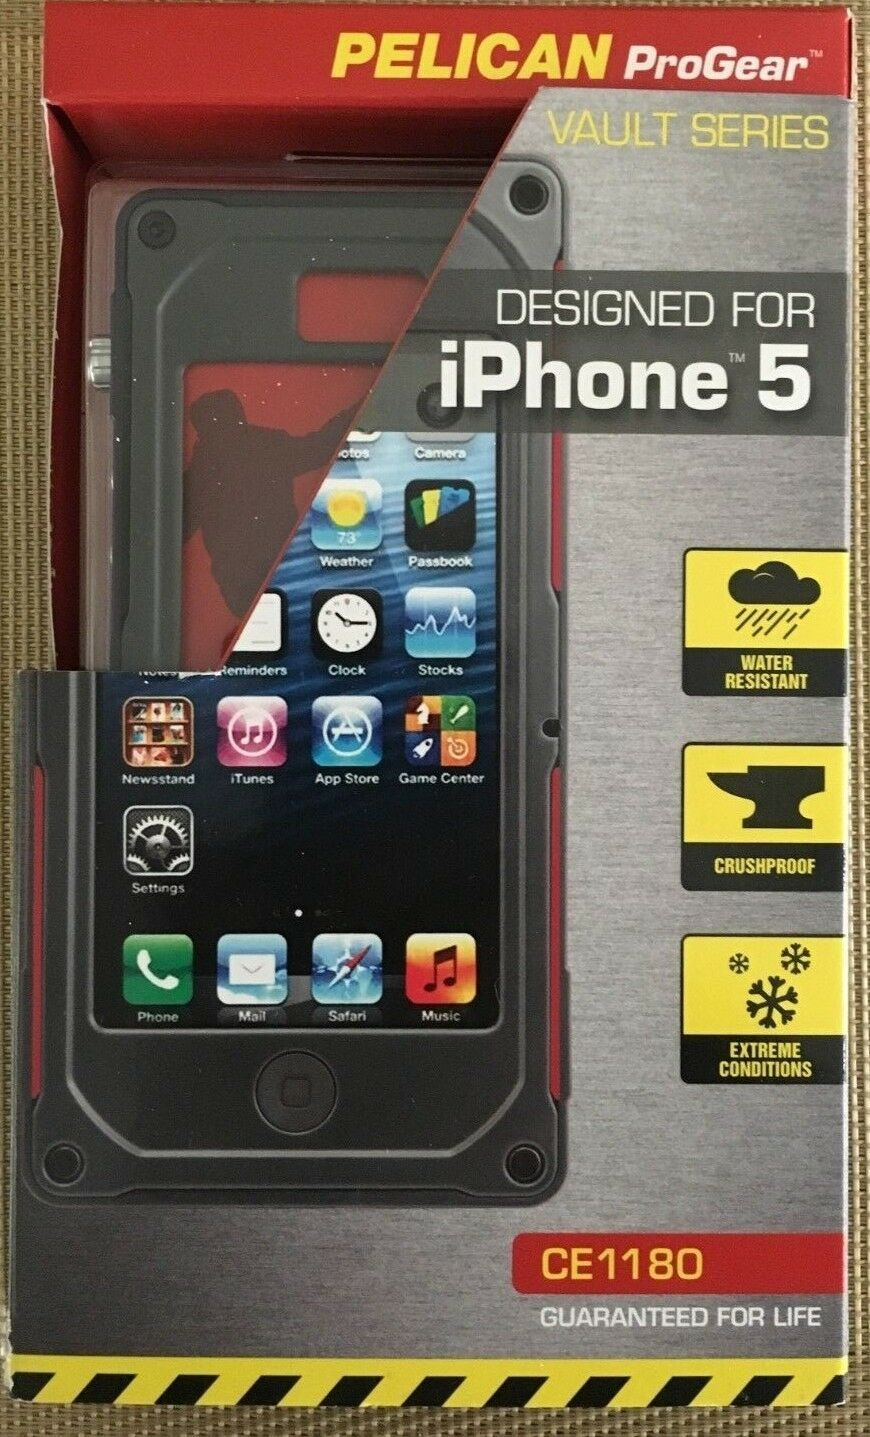 timeless design cc493 bf279 Pelican ProGear CE1180 Vault Case for iPhone 5 5s Protective Water Resistant